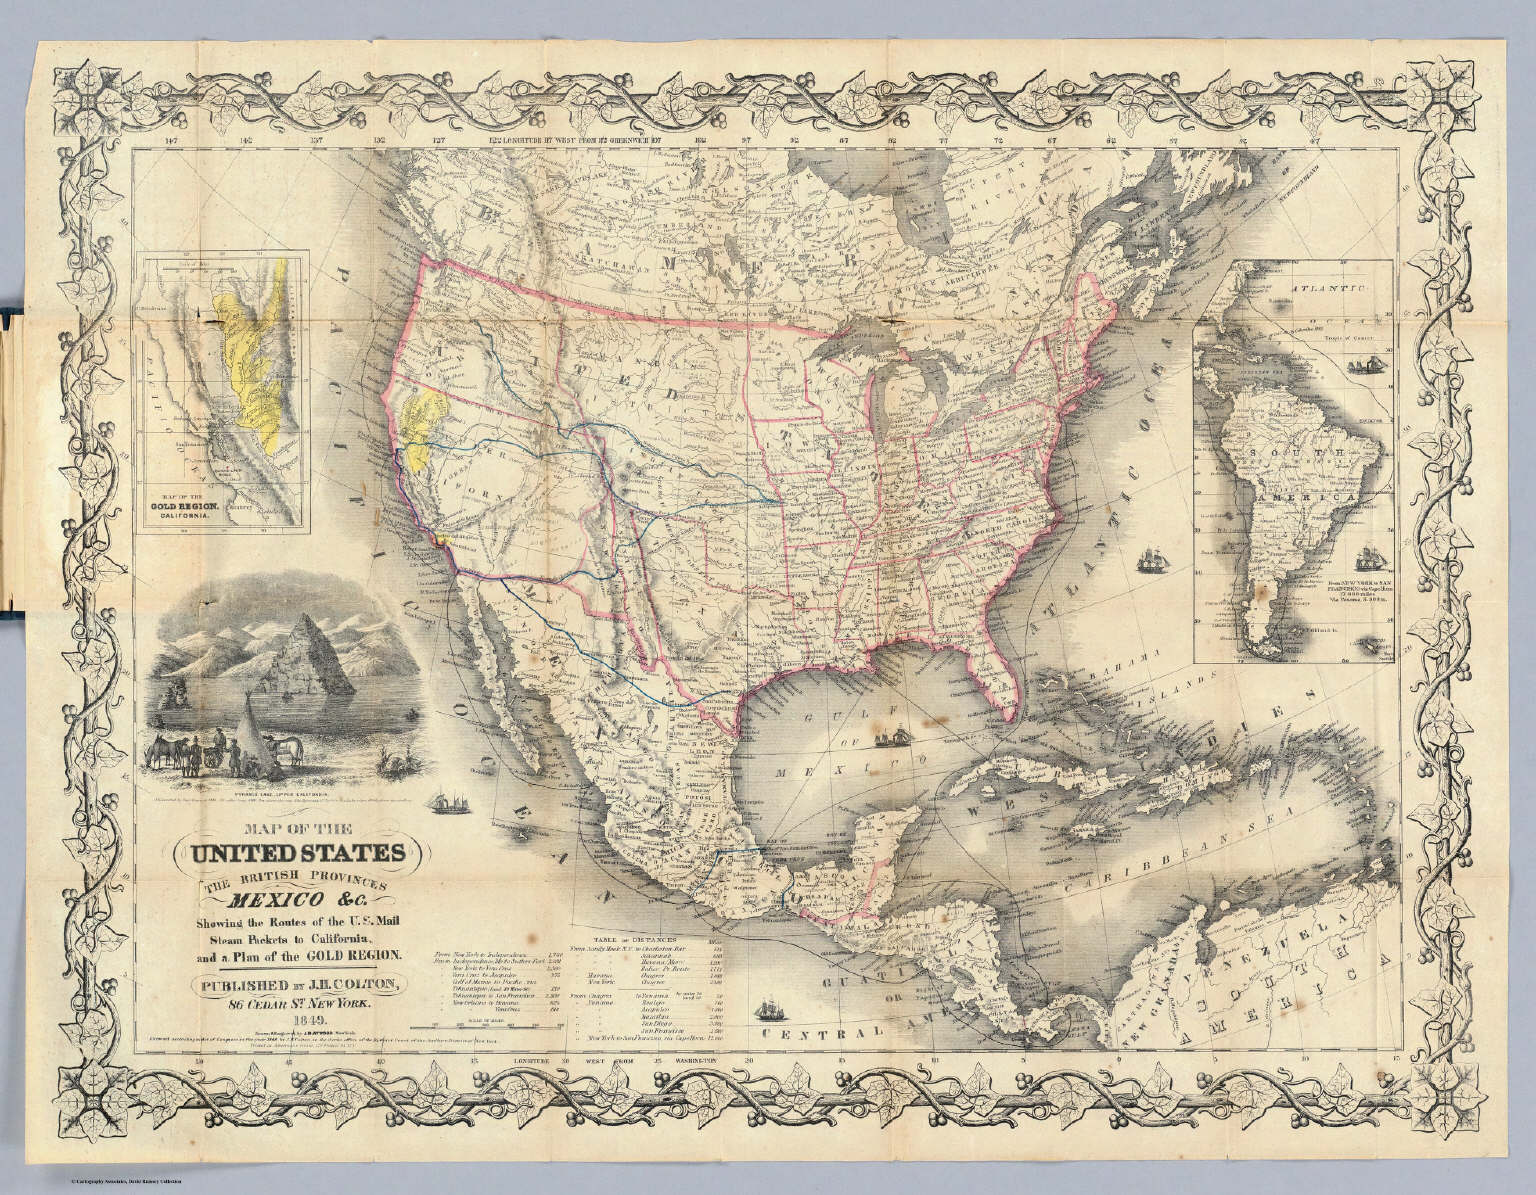 Map Of The United States The British Provinces Mexico C David - Map of us routes